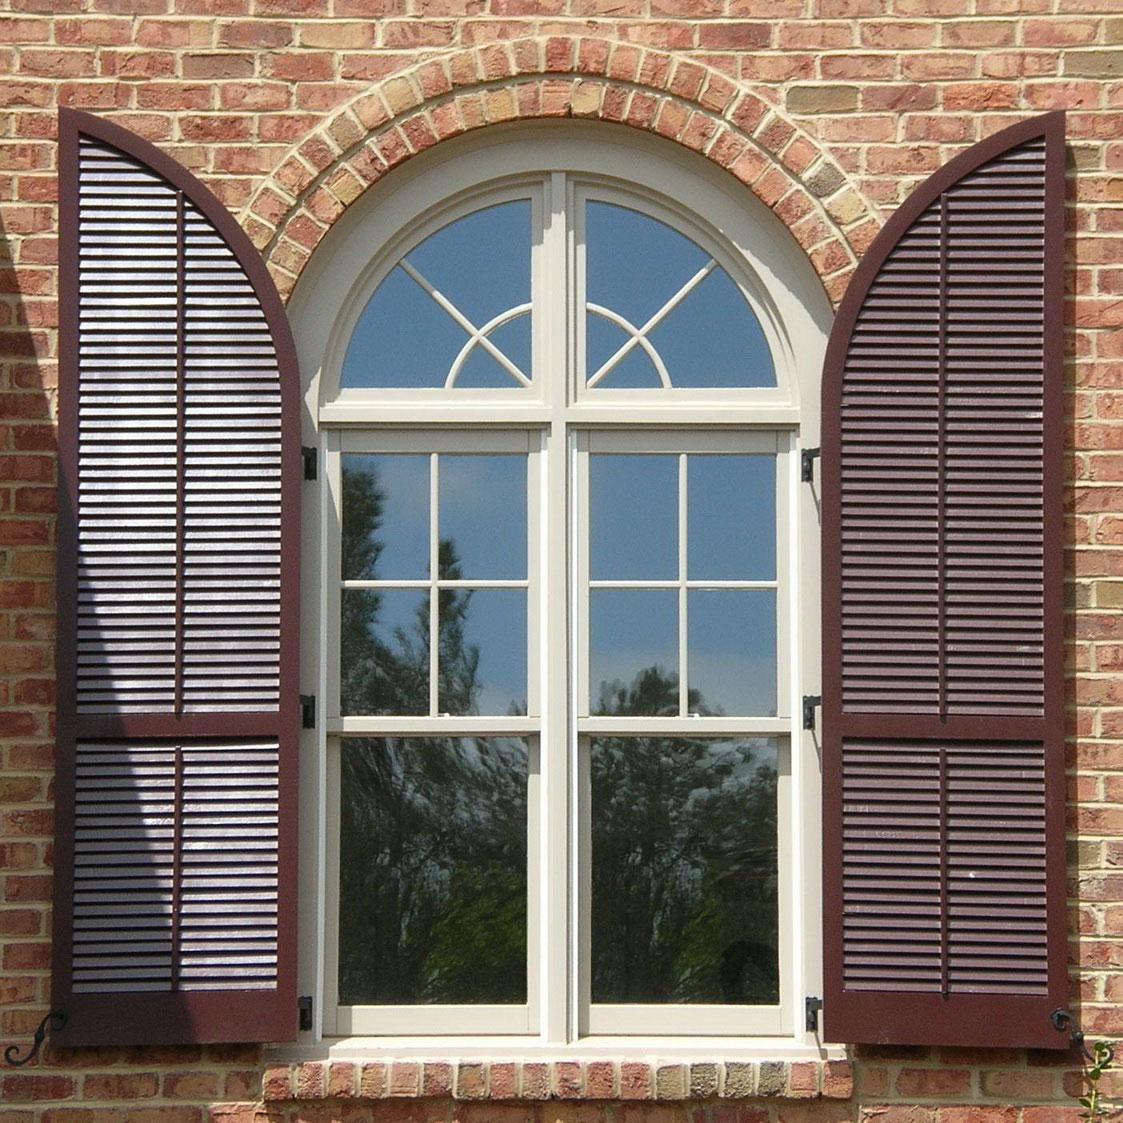 Cool exterior window shutter styles for arched windows